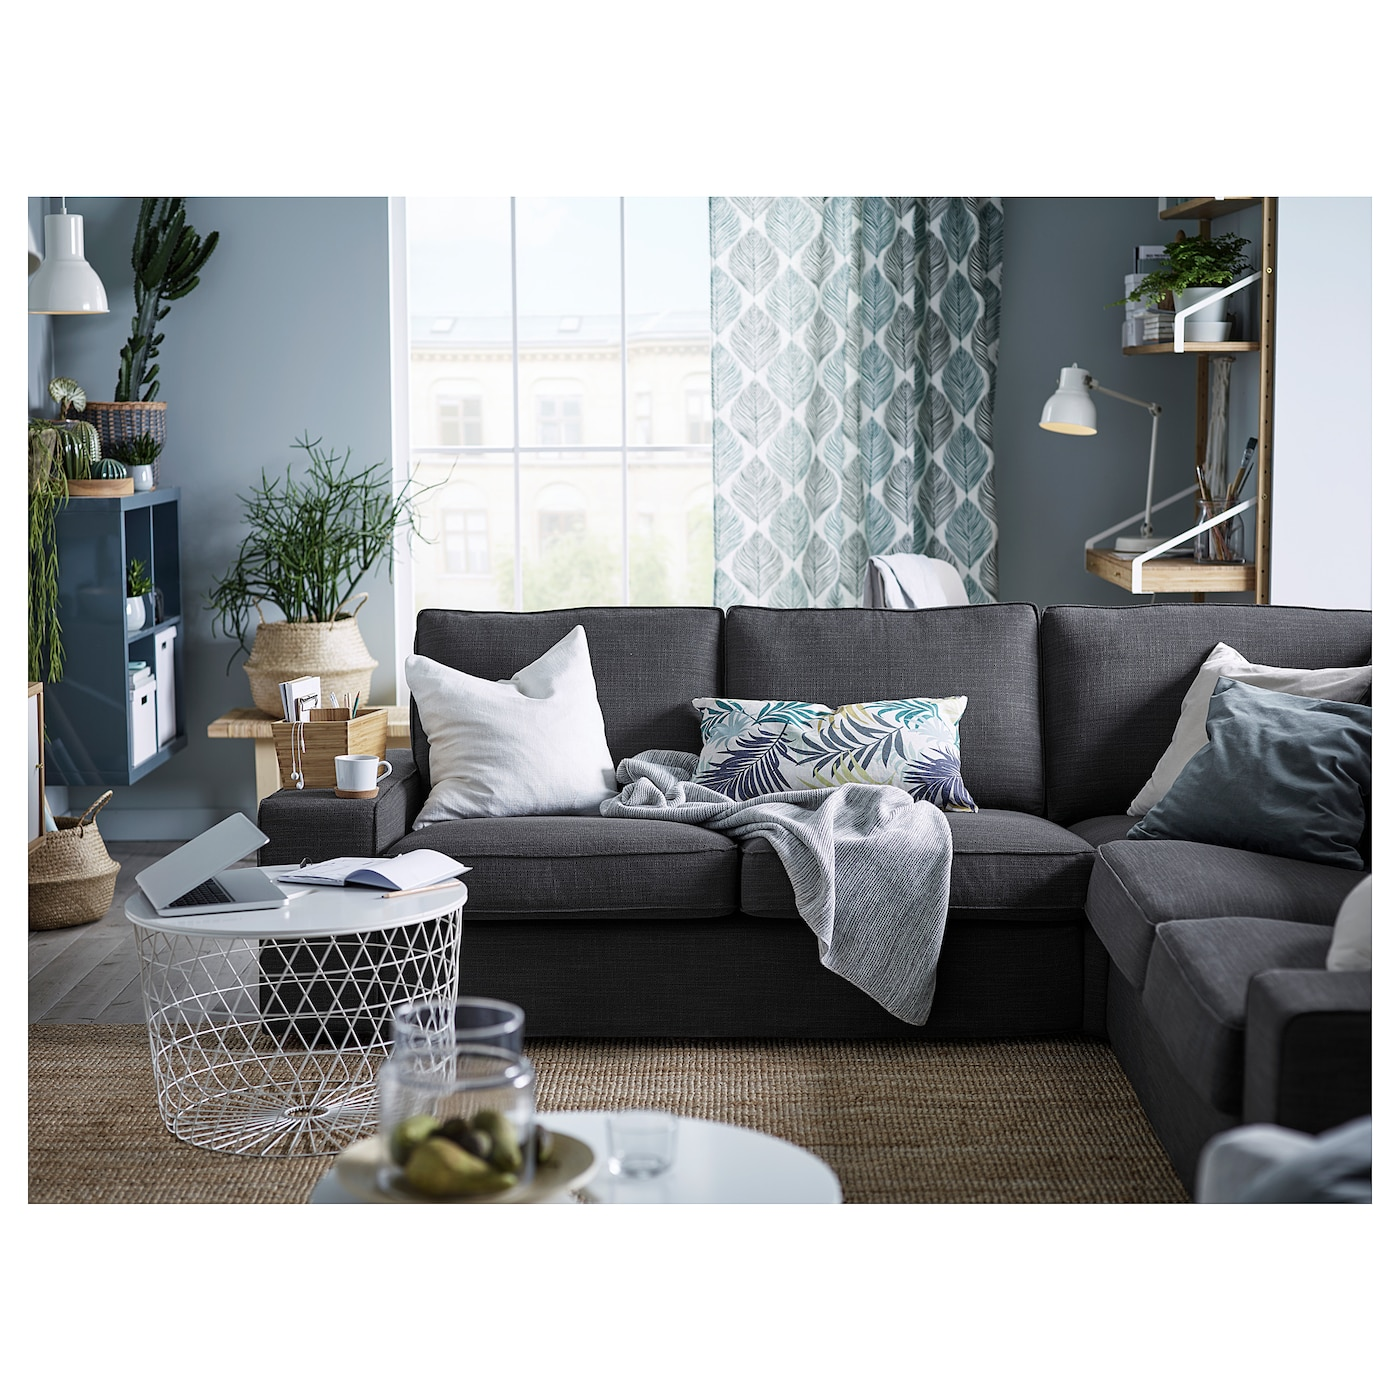 Ikea Kivik Corner Sofa 4 Seat 10 Year Guarantee Read About The Terms